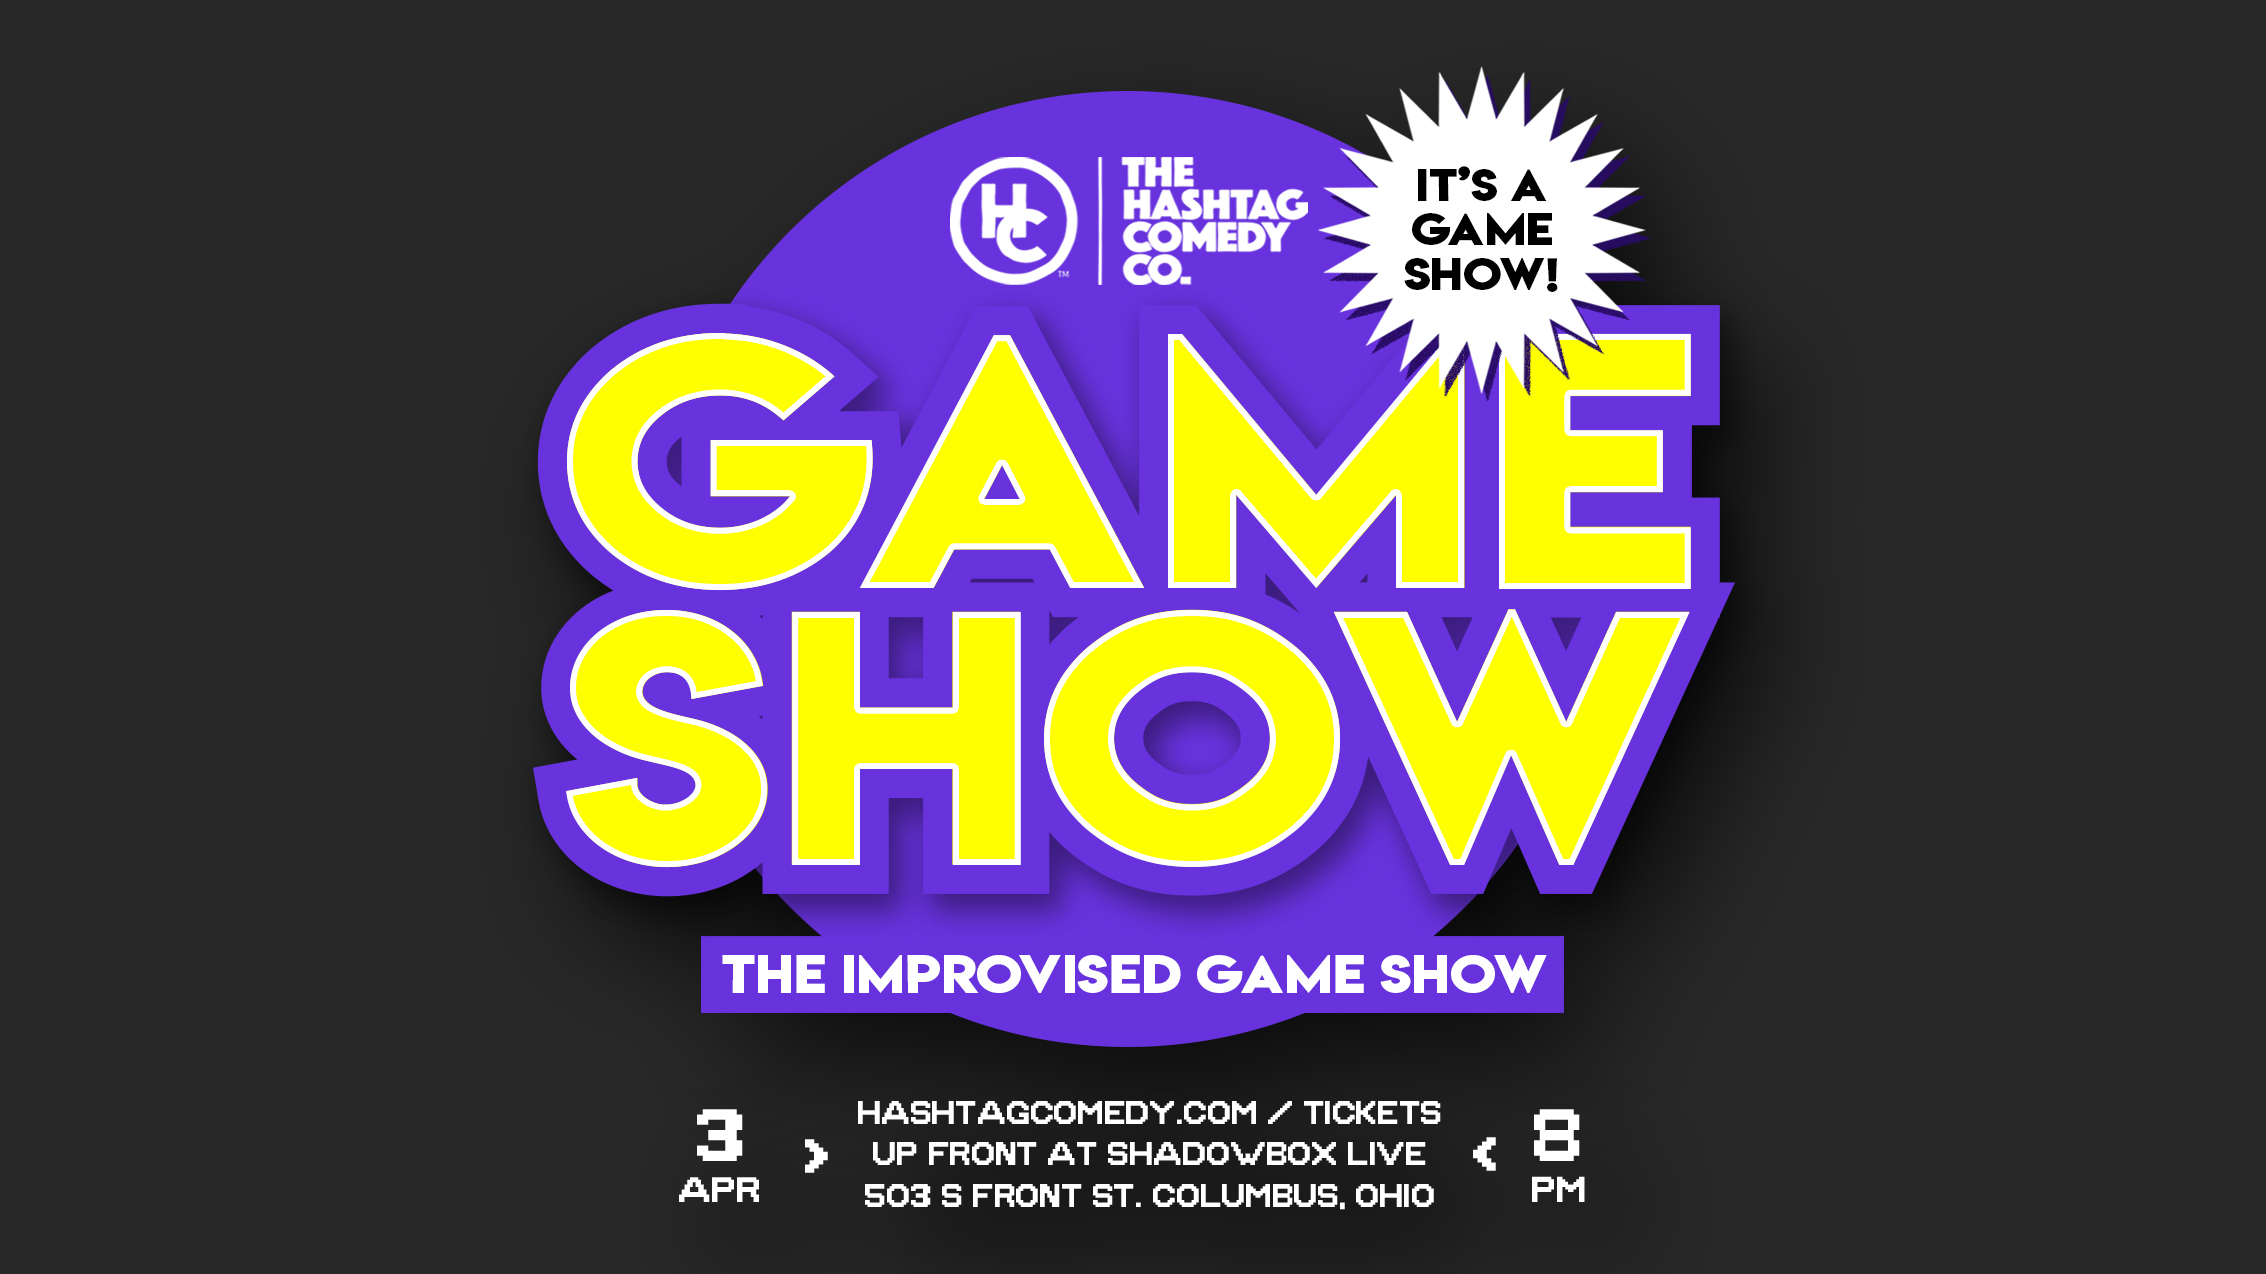 190403-game-show.jpg